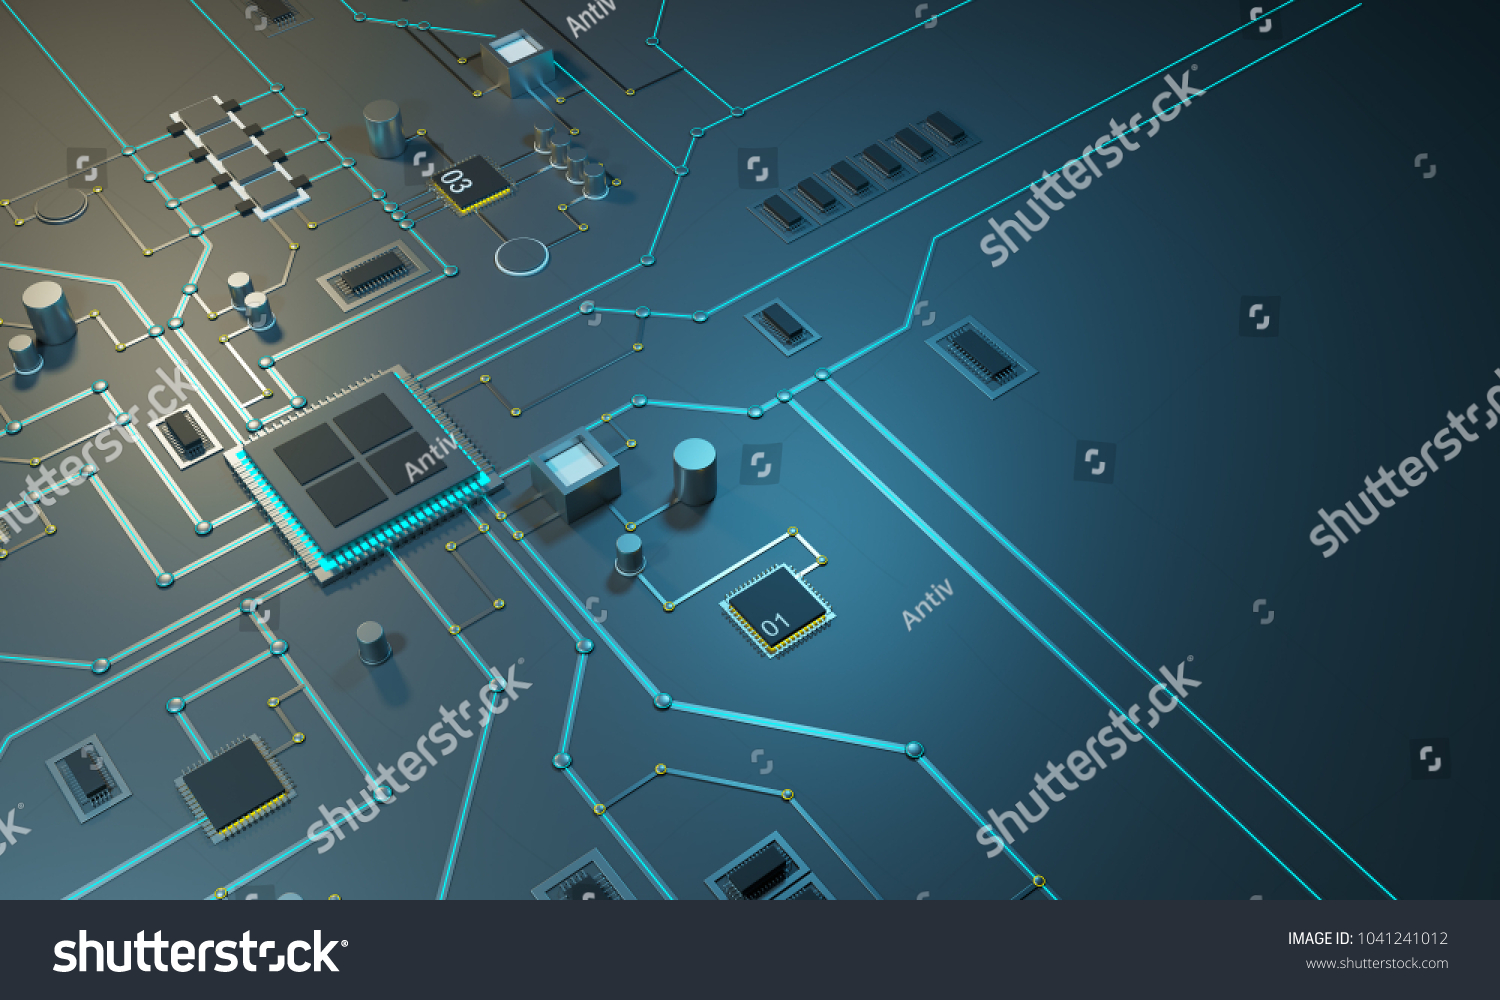 Royalty Free Stock Illustration of High Tech Electronic PCB Printed ...